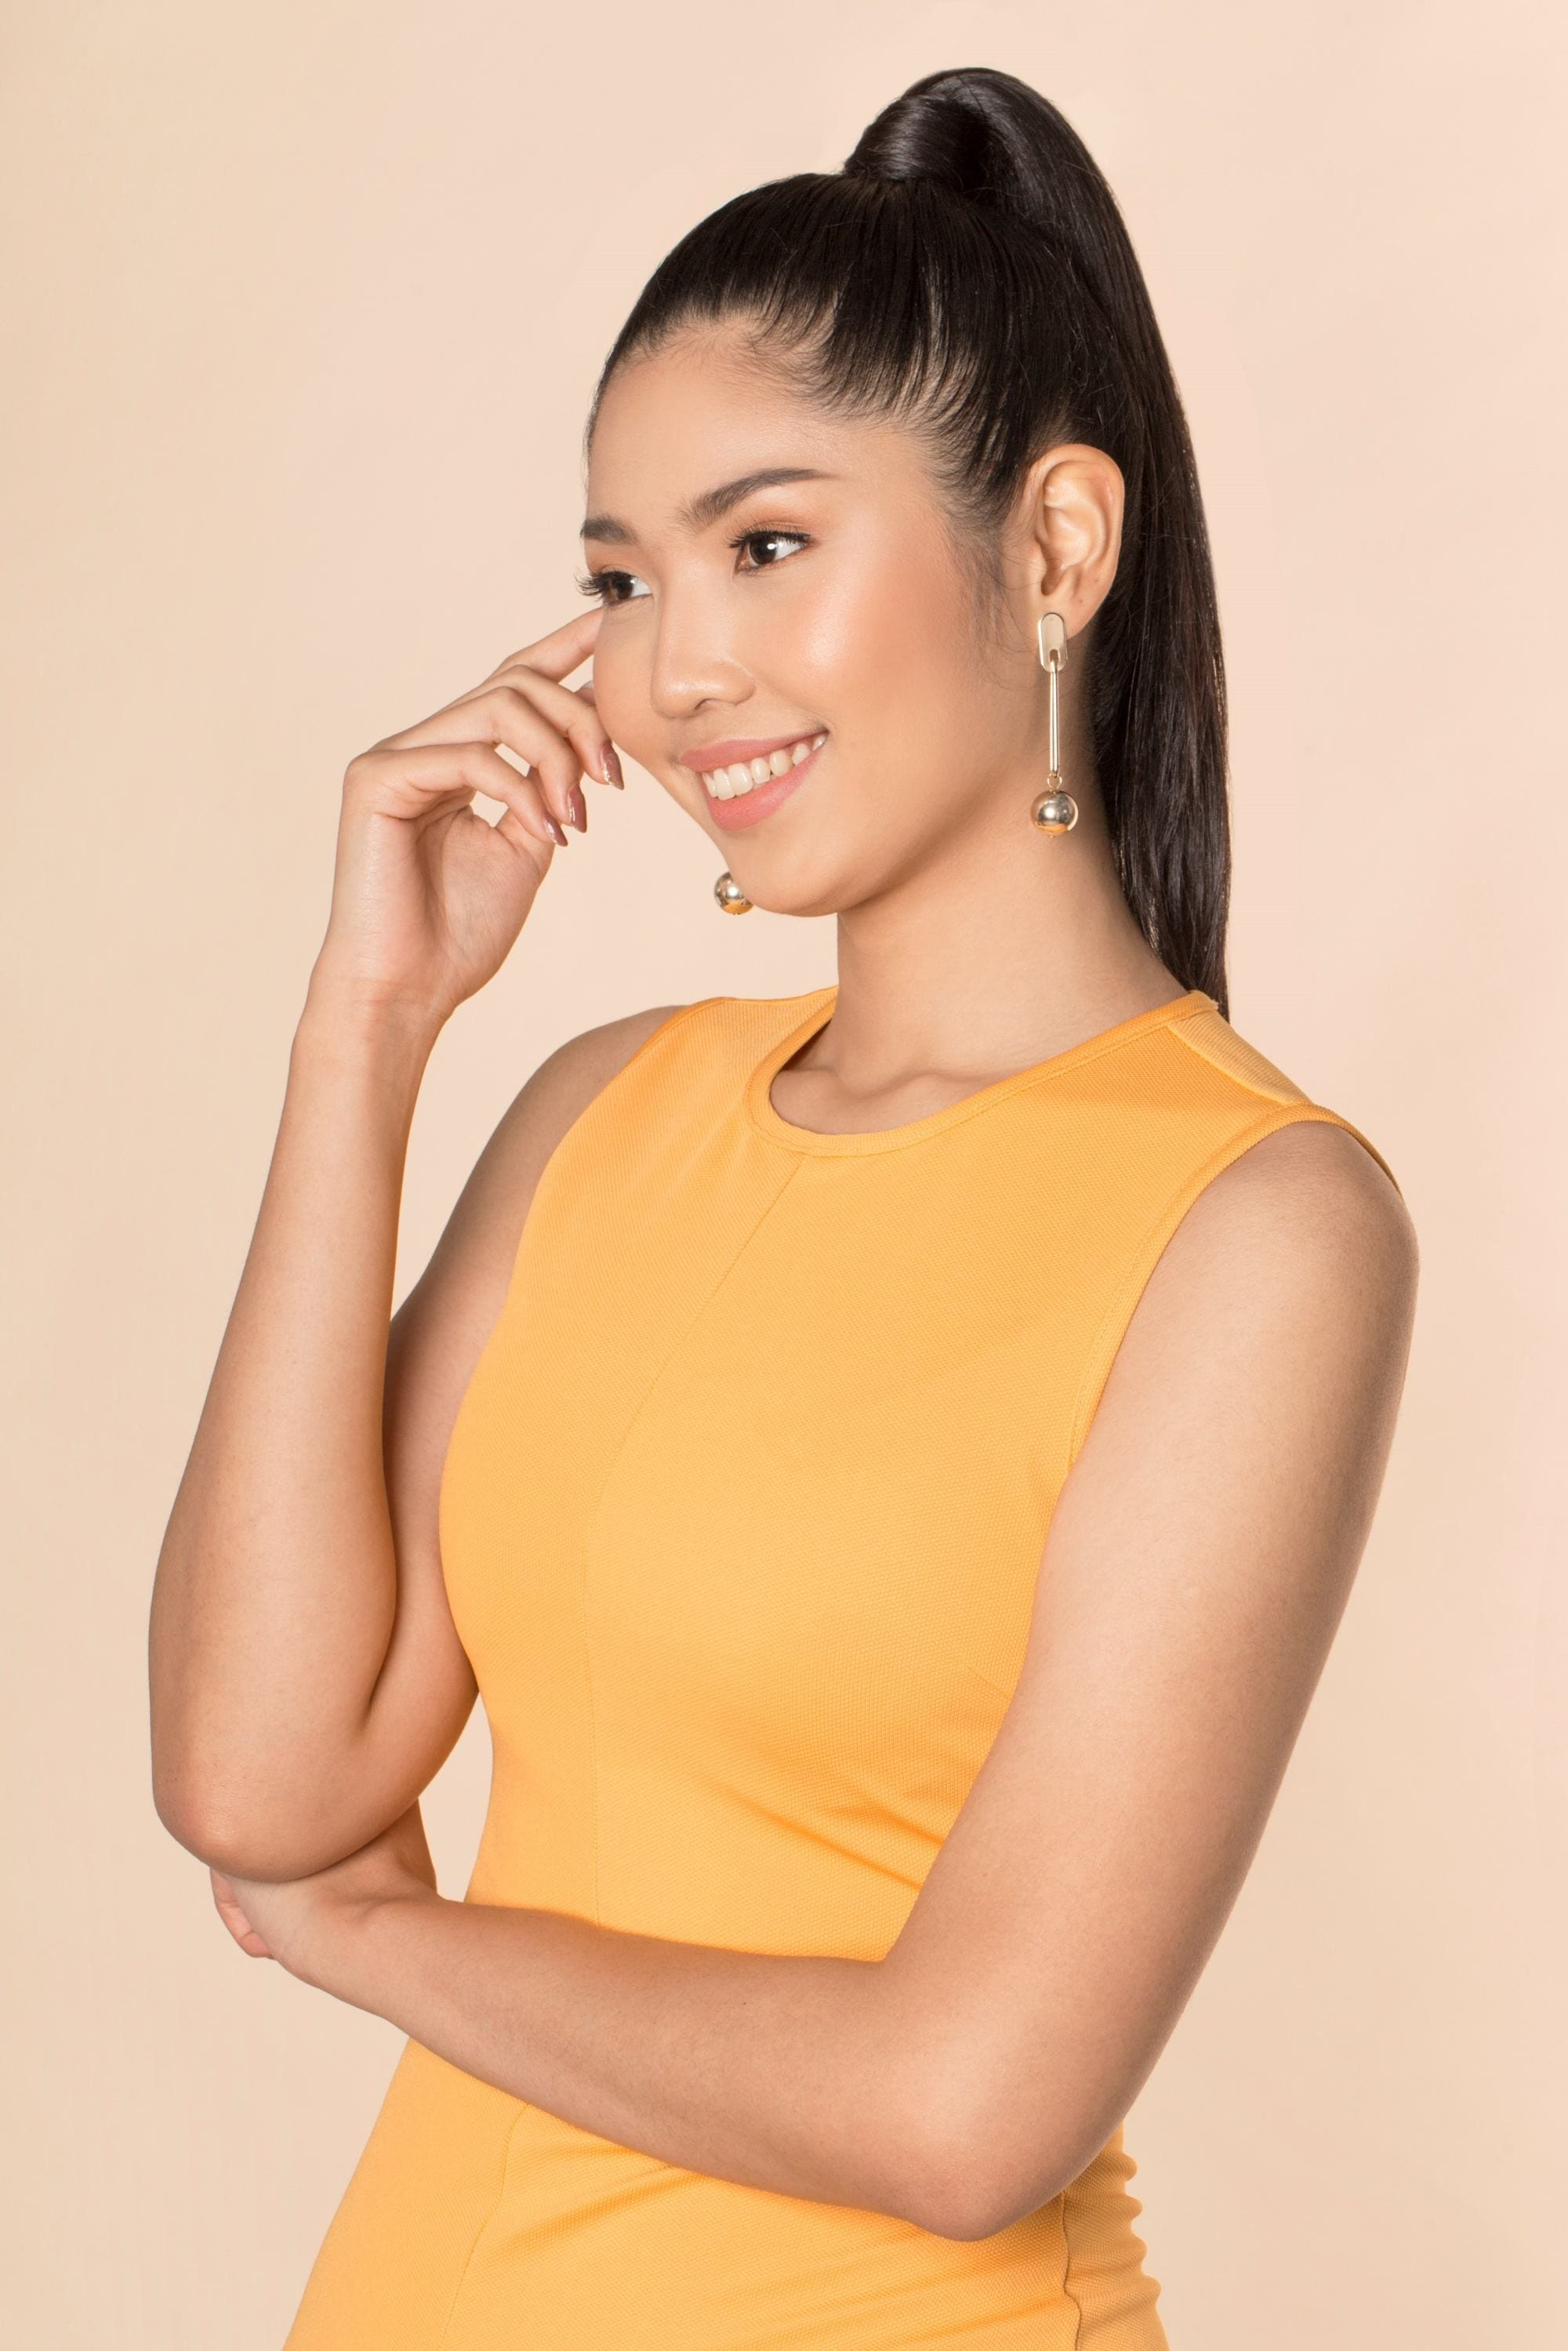 Sleek tied hair: Asian woman with long black hair in high ponytail wearing a mustard-colored sleeveless dress